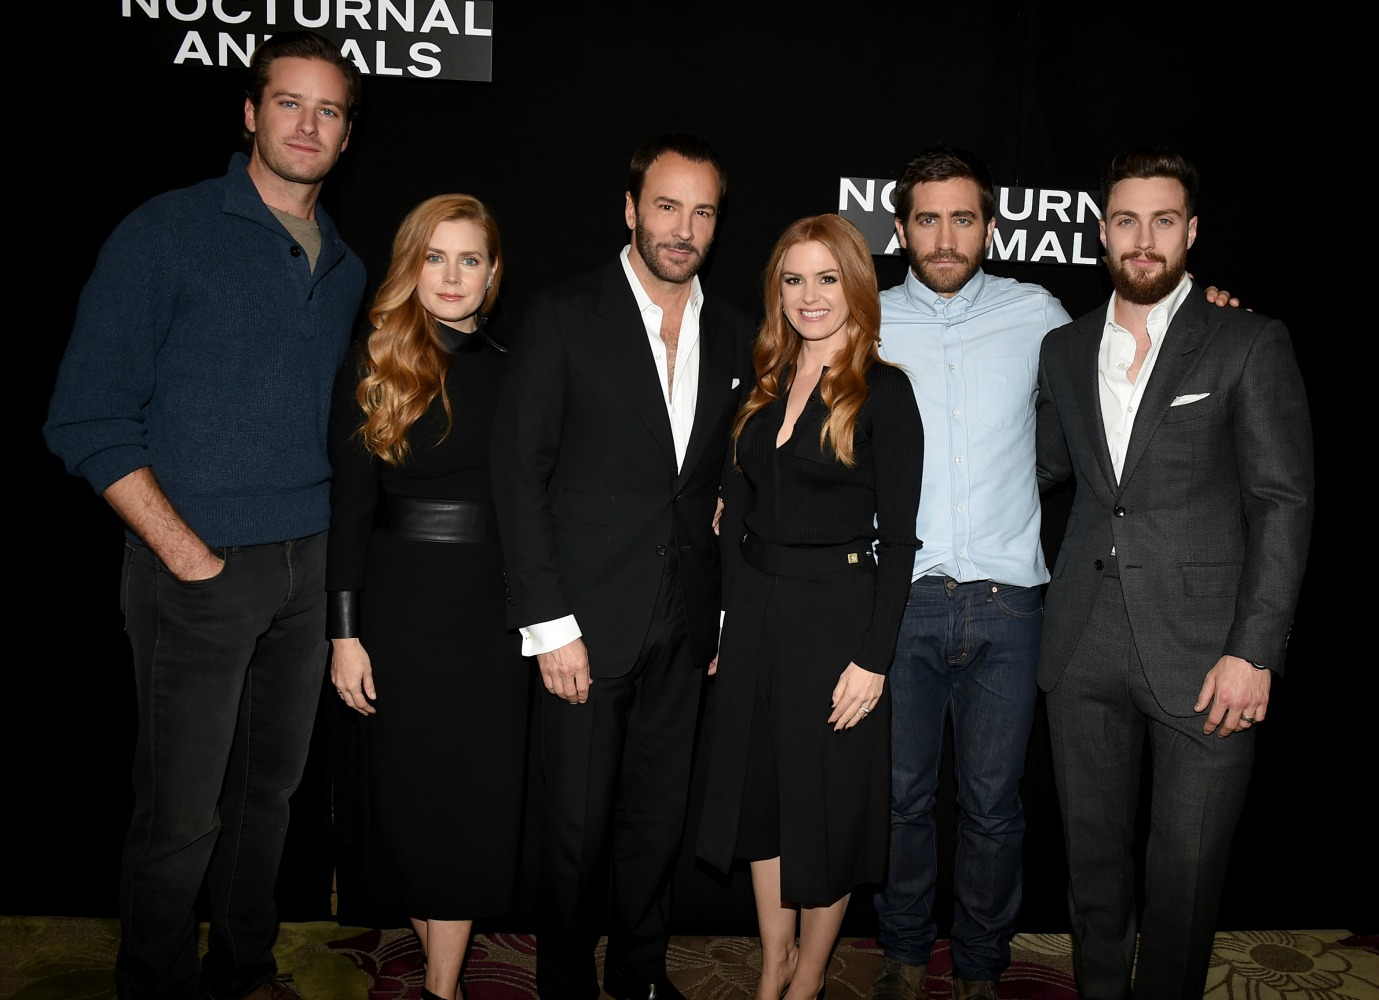 attends the photo call for  Focus Features'  Nocturnal Animals  at Four Seasons Hotel Los Angeles at Beverly Hills on October 28, 2016 in Los Angeles, California.